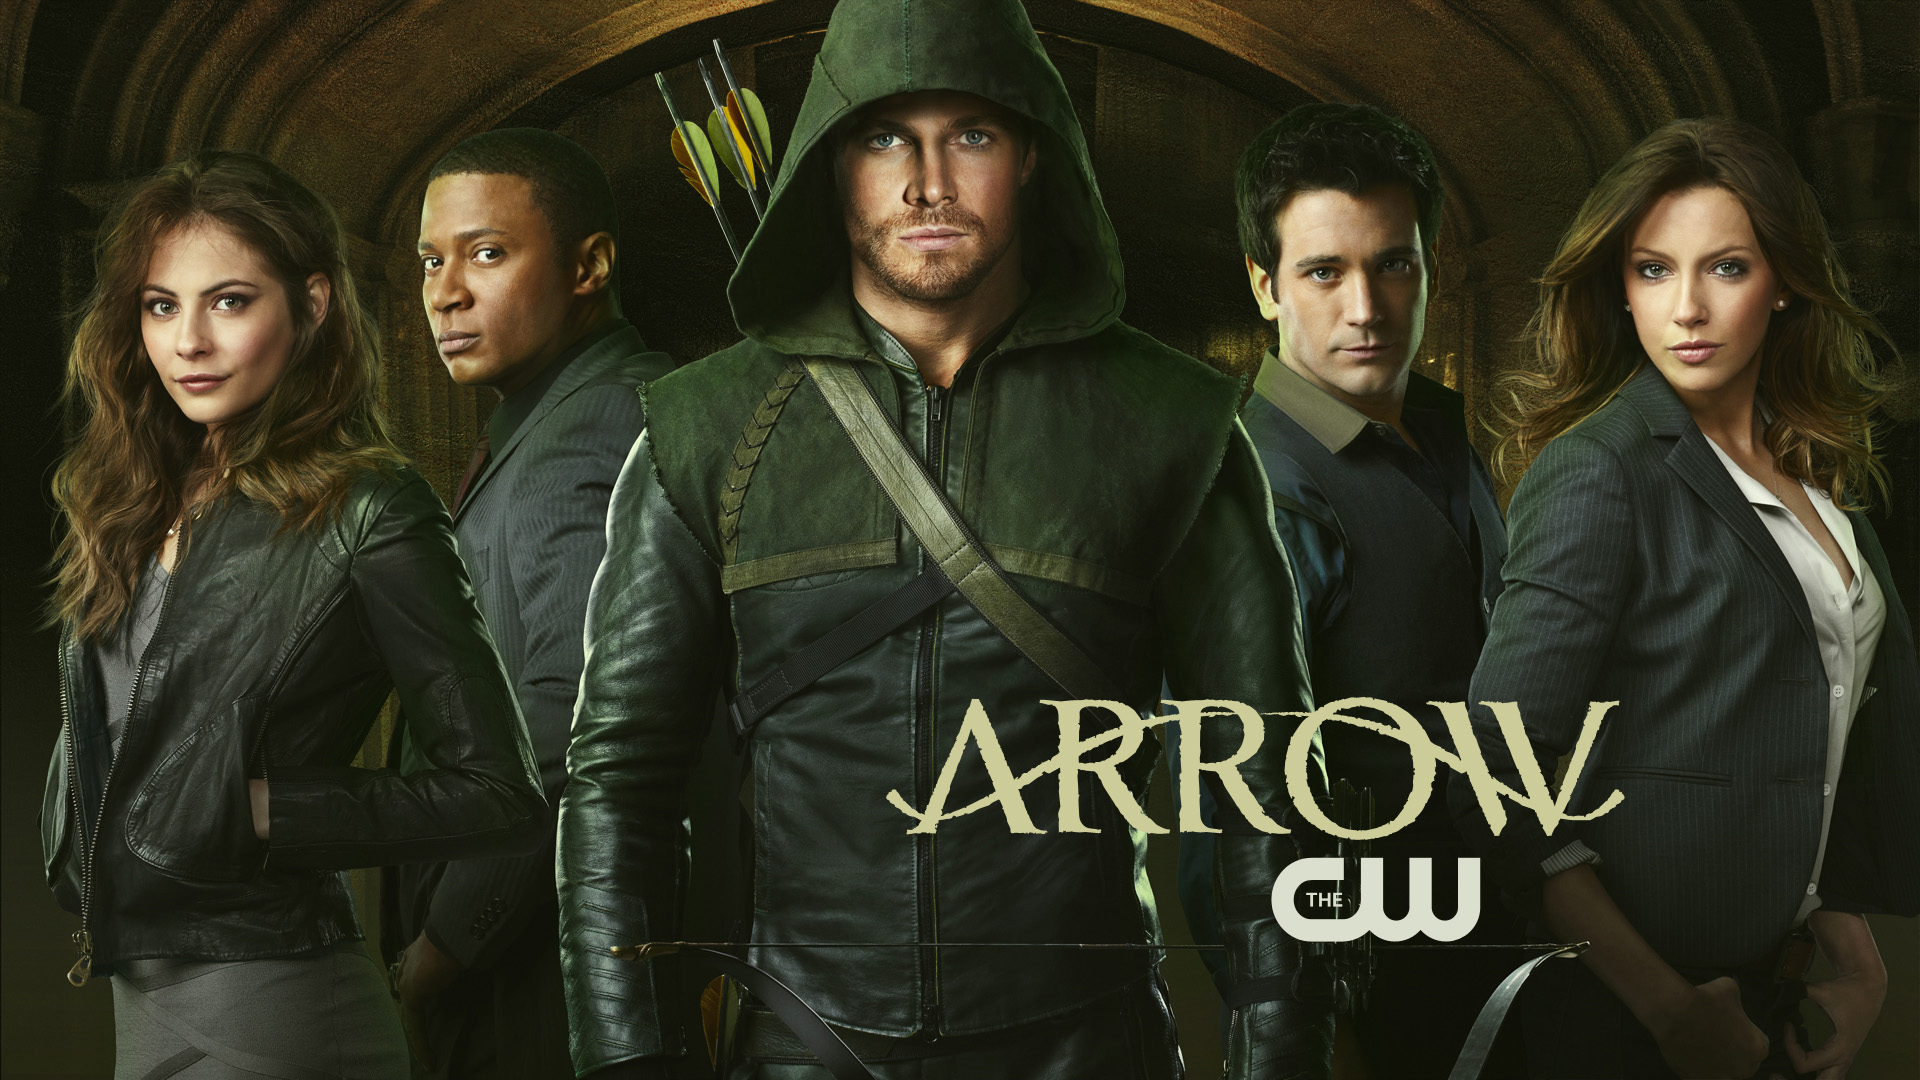 Arrow CW TV Show Wallpapers HD Wallpapers 1920x1080